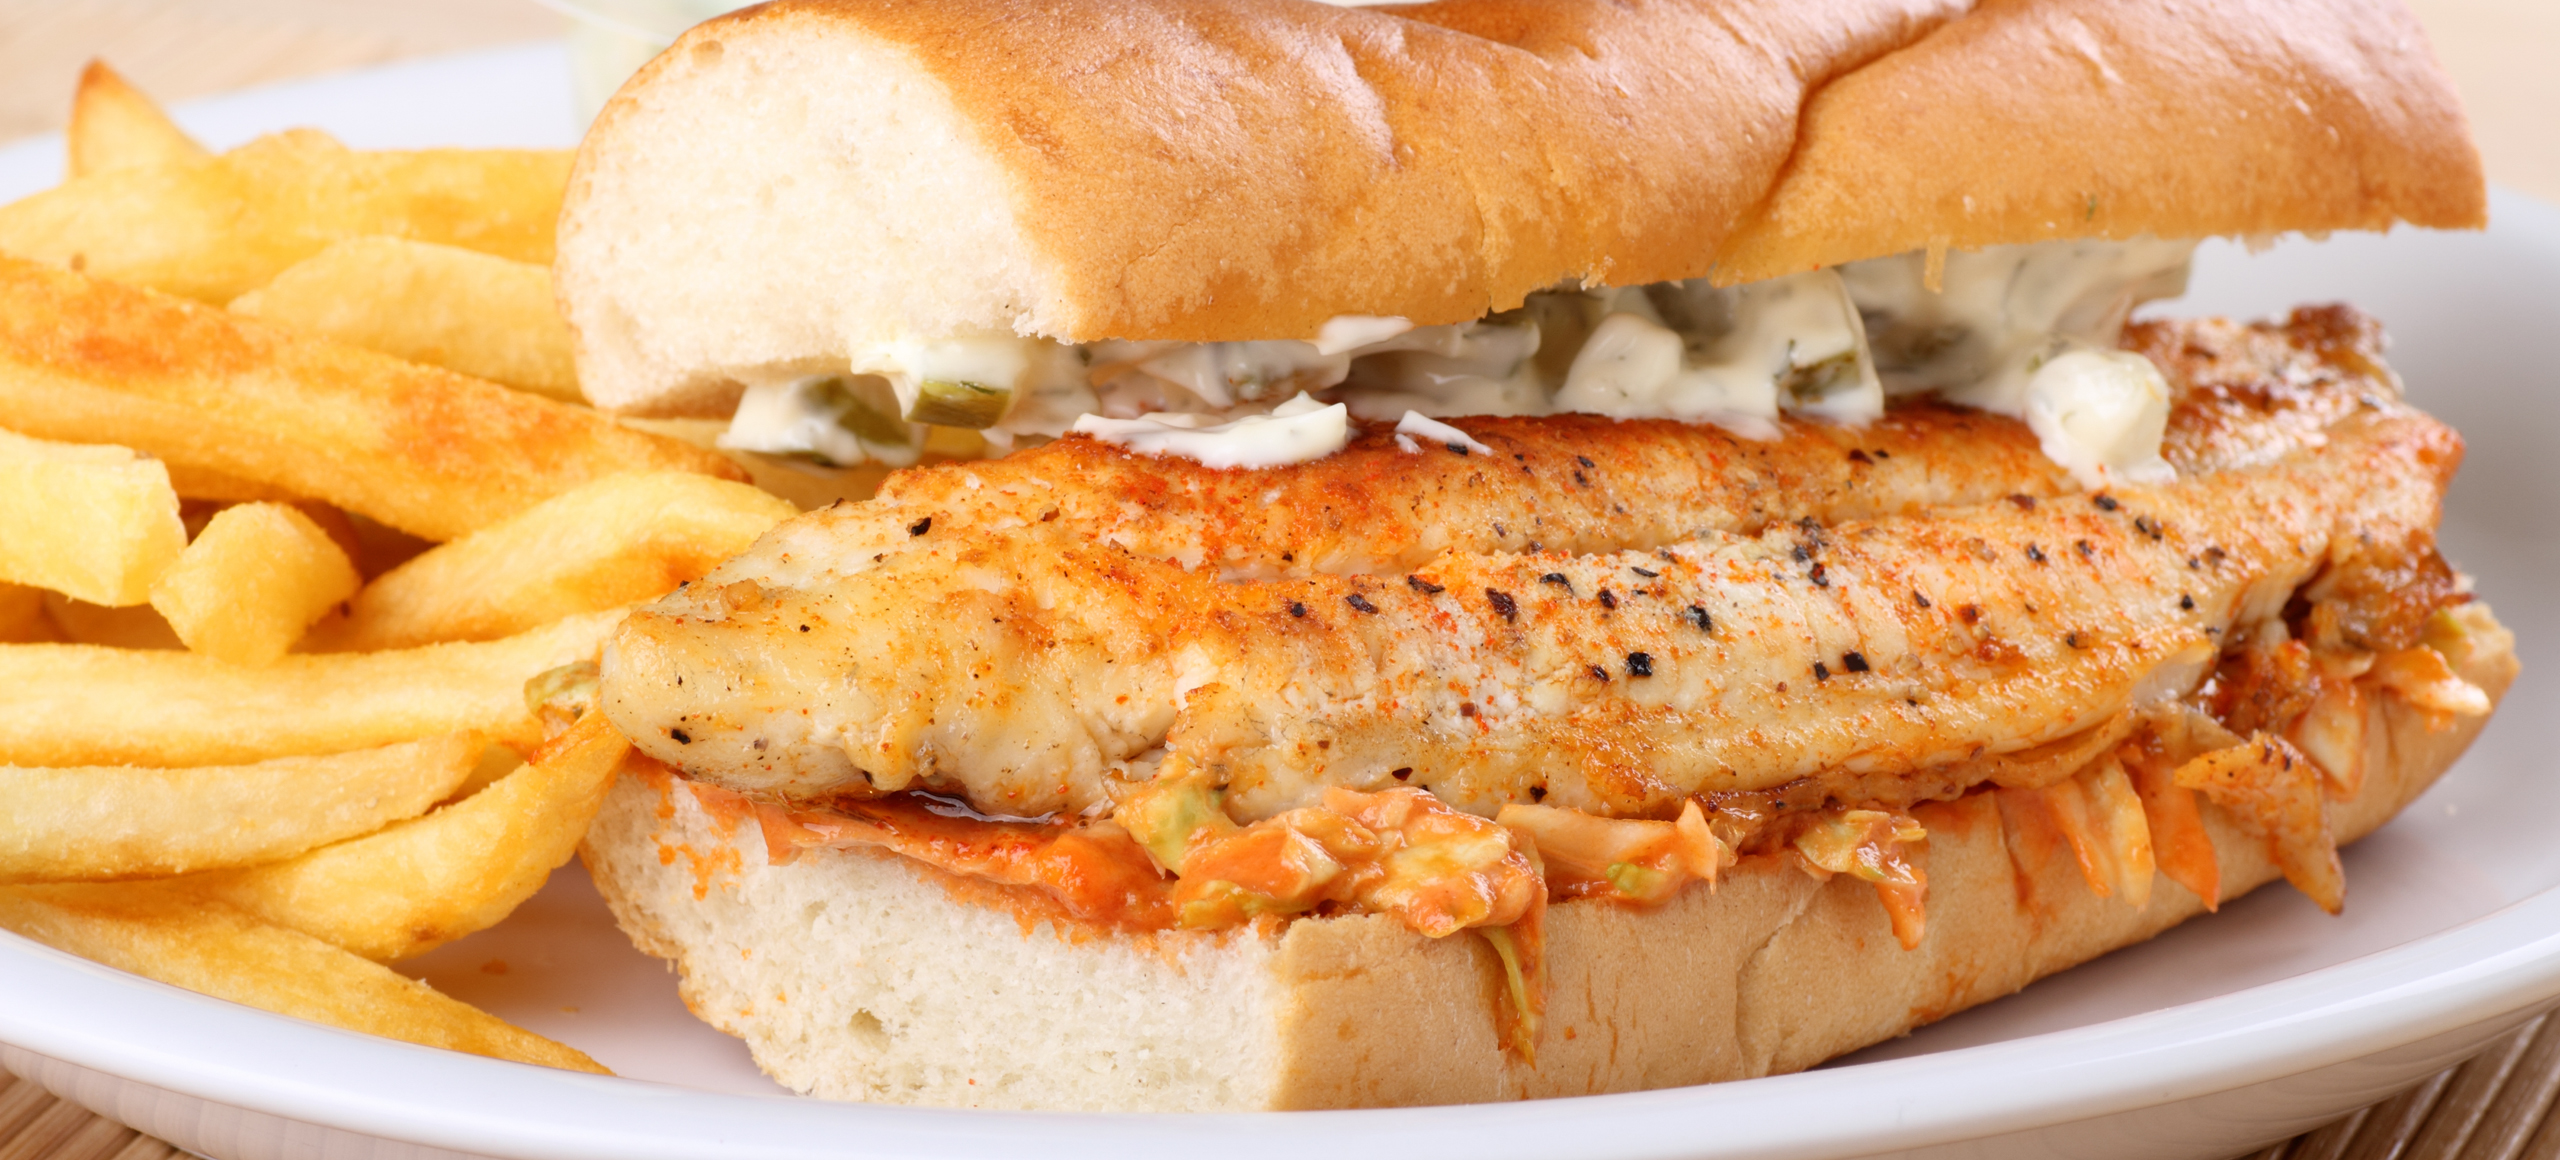 Order online catch isle d open dining for Who has the best fish sandwich